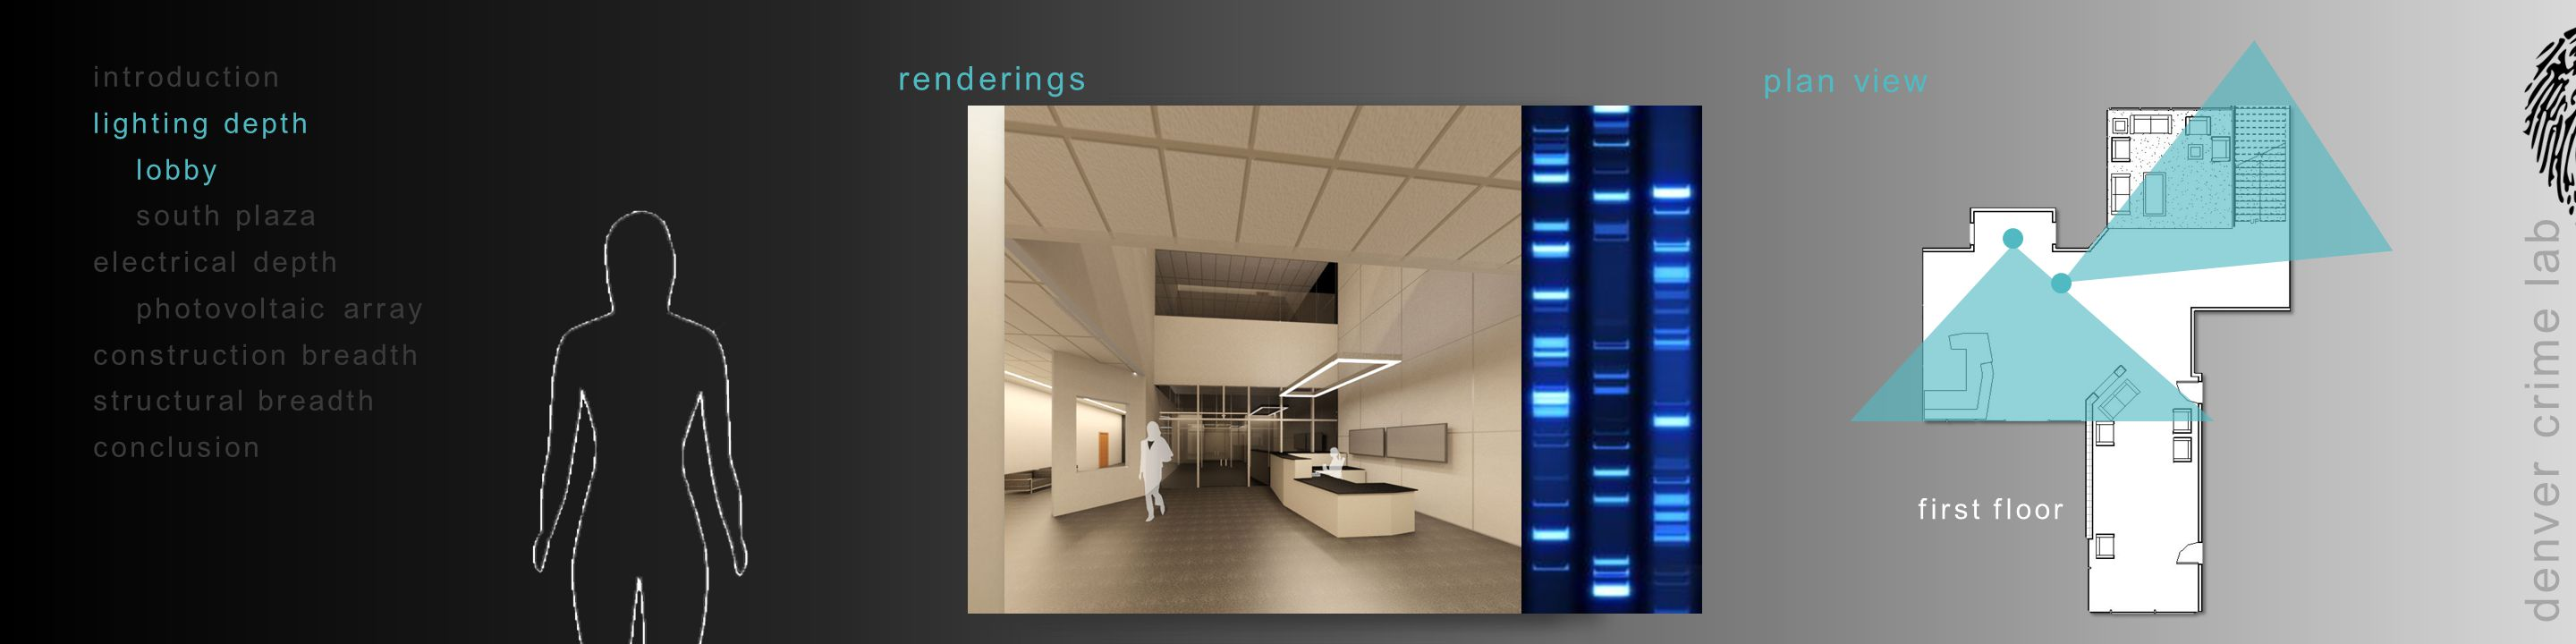 introduction lighting depth lobby south plaza electrical depth photovoltaic array construction breadth structural breadth conclusion denver crime lab reflected ceiling plans first floorthird floor